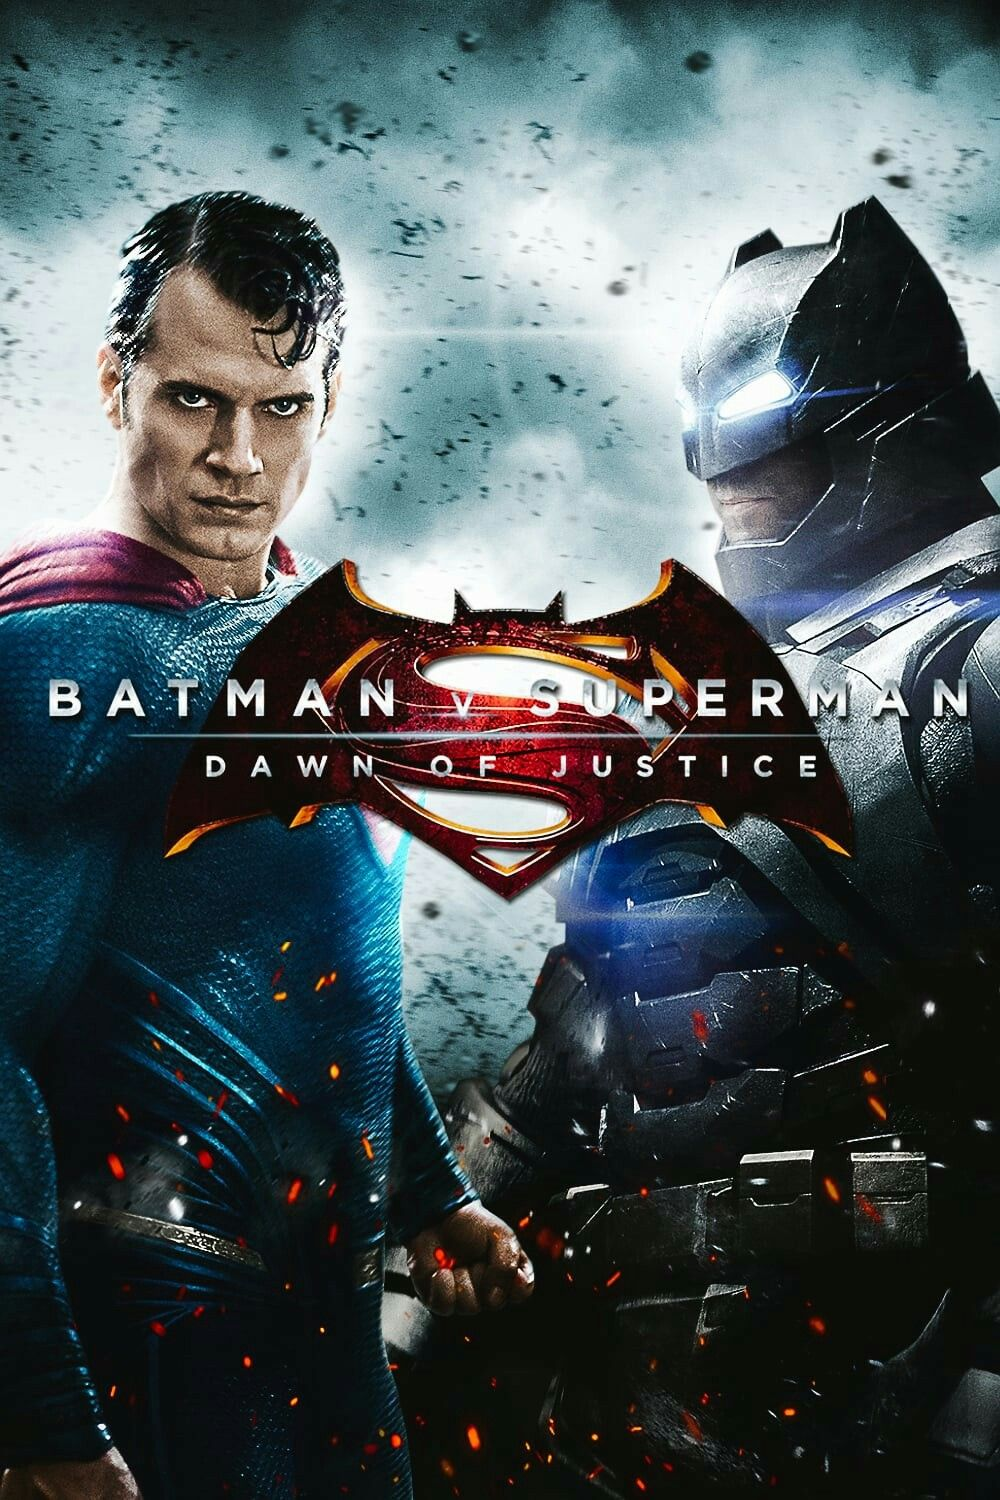 batman vs superman dawn of justice movie download 700mb